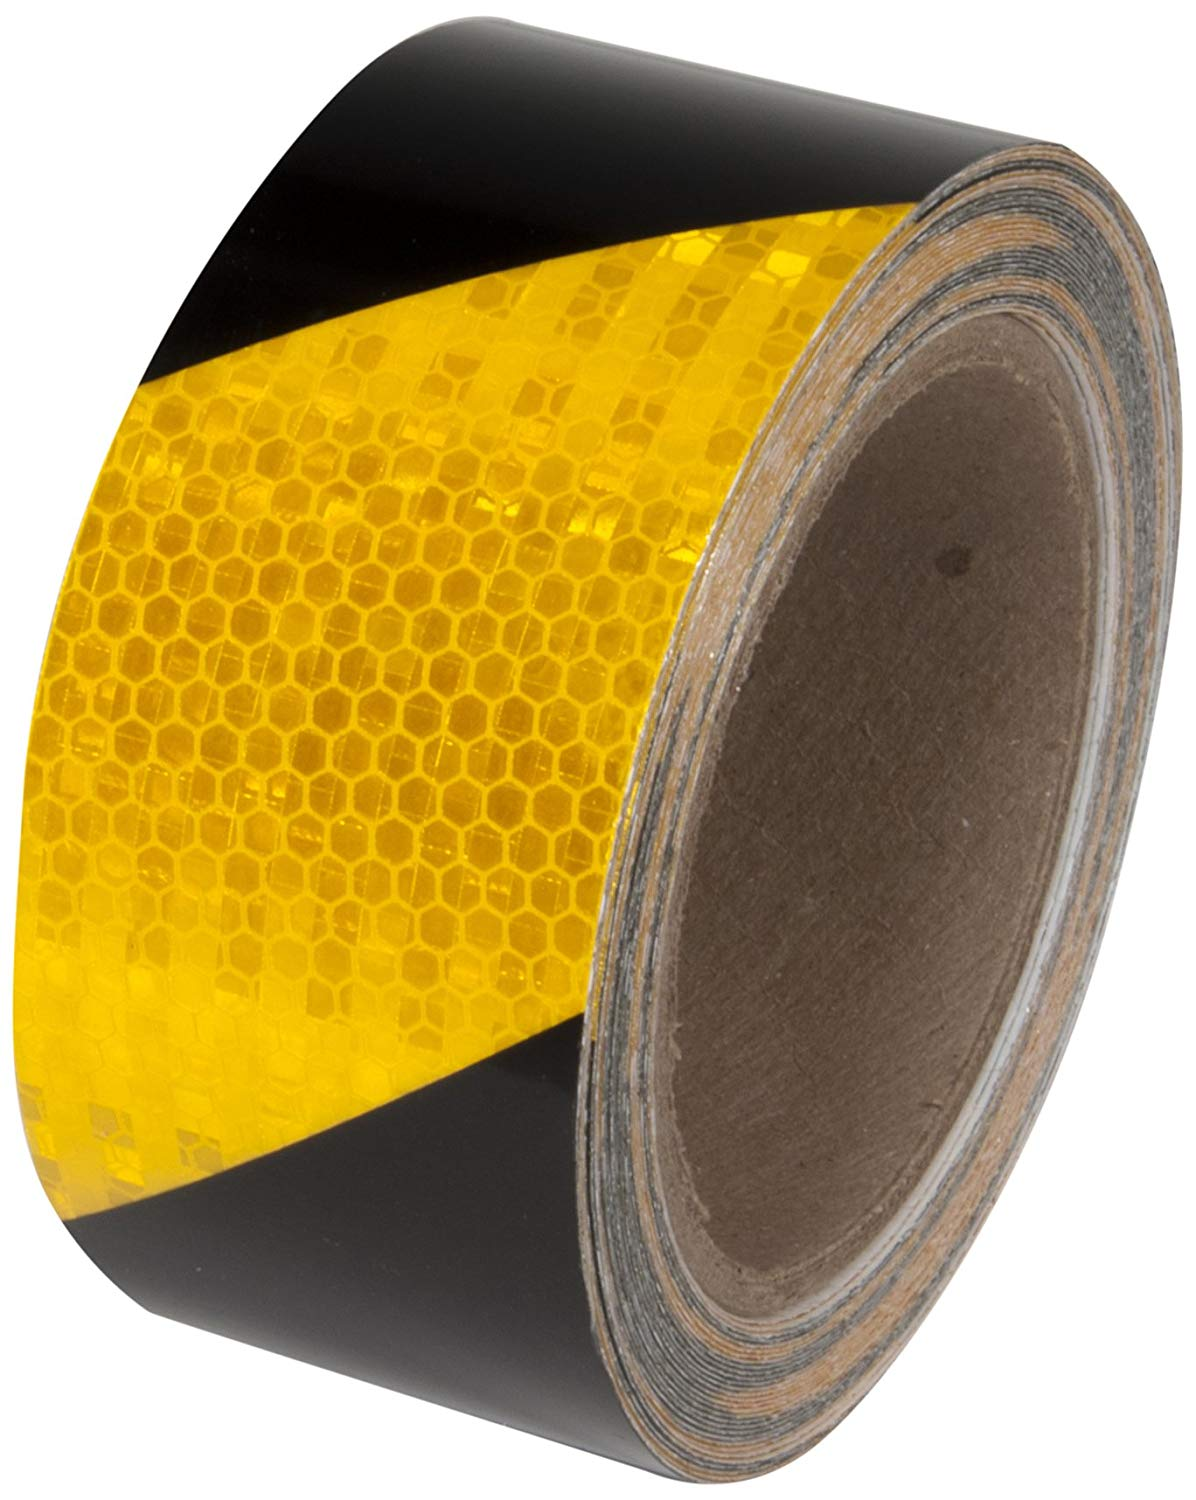 Reflective Tape - Black and Yellow - 1 x 30'